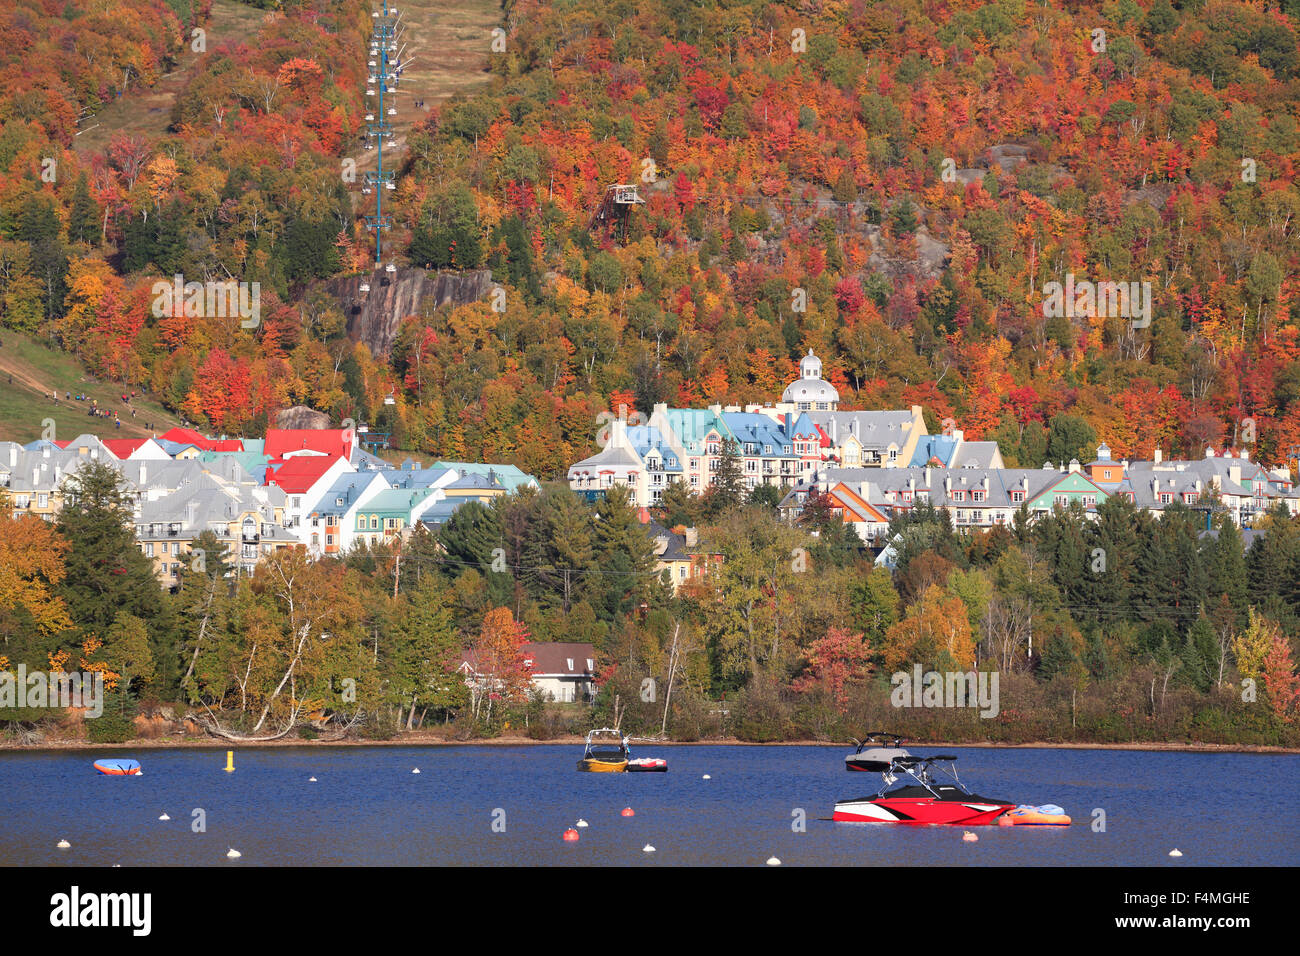 Mont Tremblant lake and village with autumn colors, Quebec, Canada - Stock Image